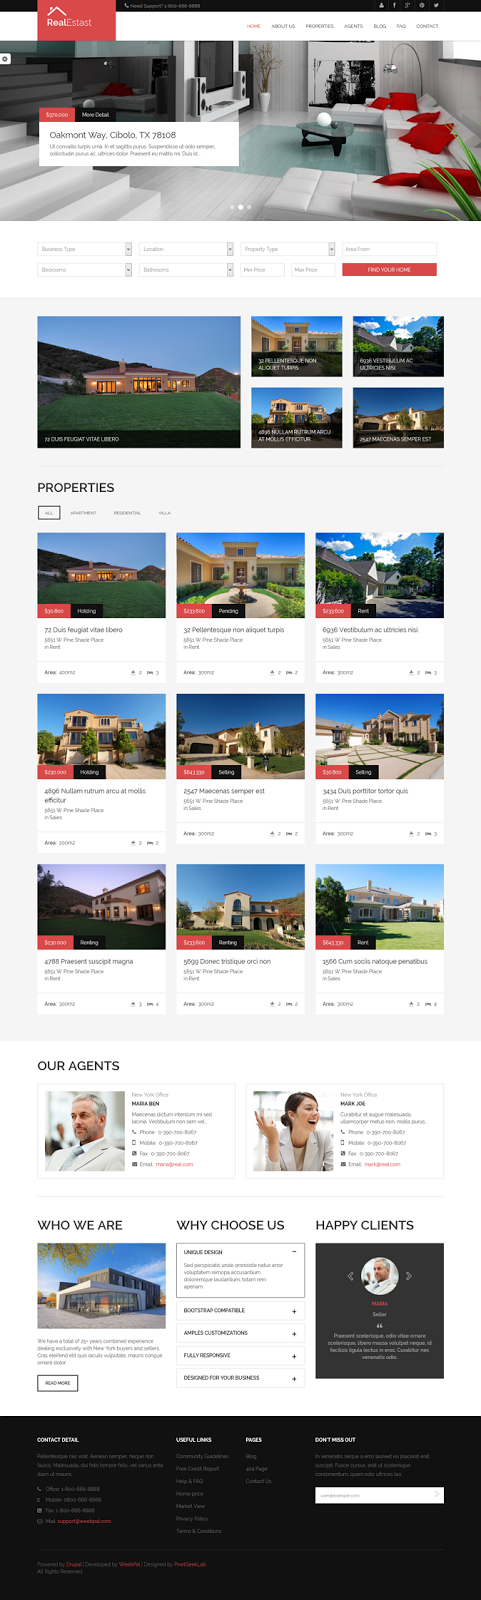 Best real estate website template